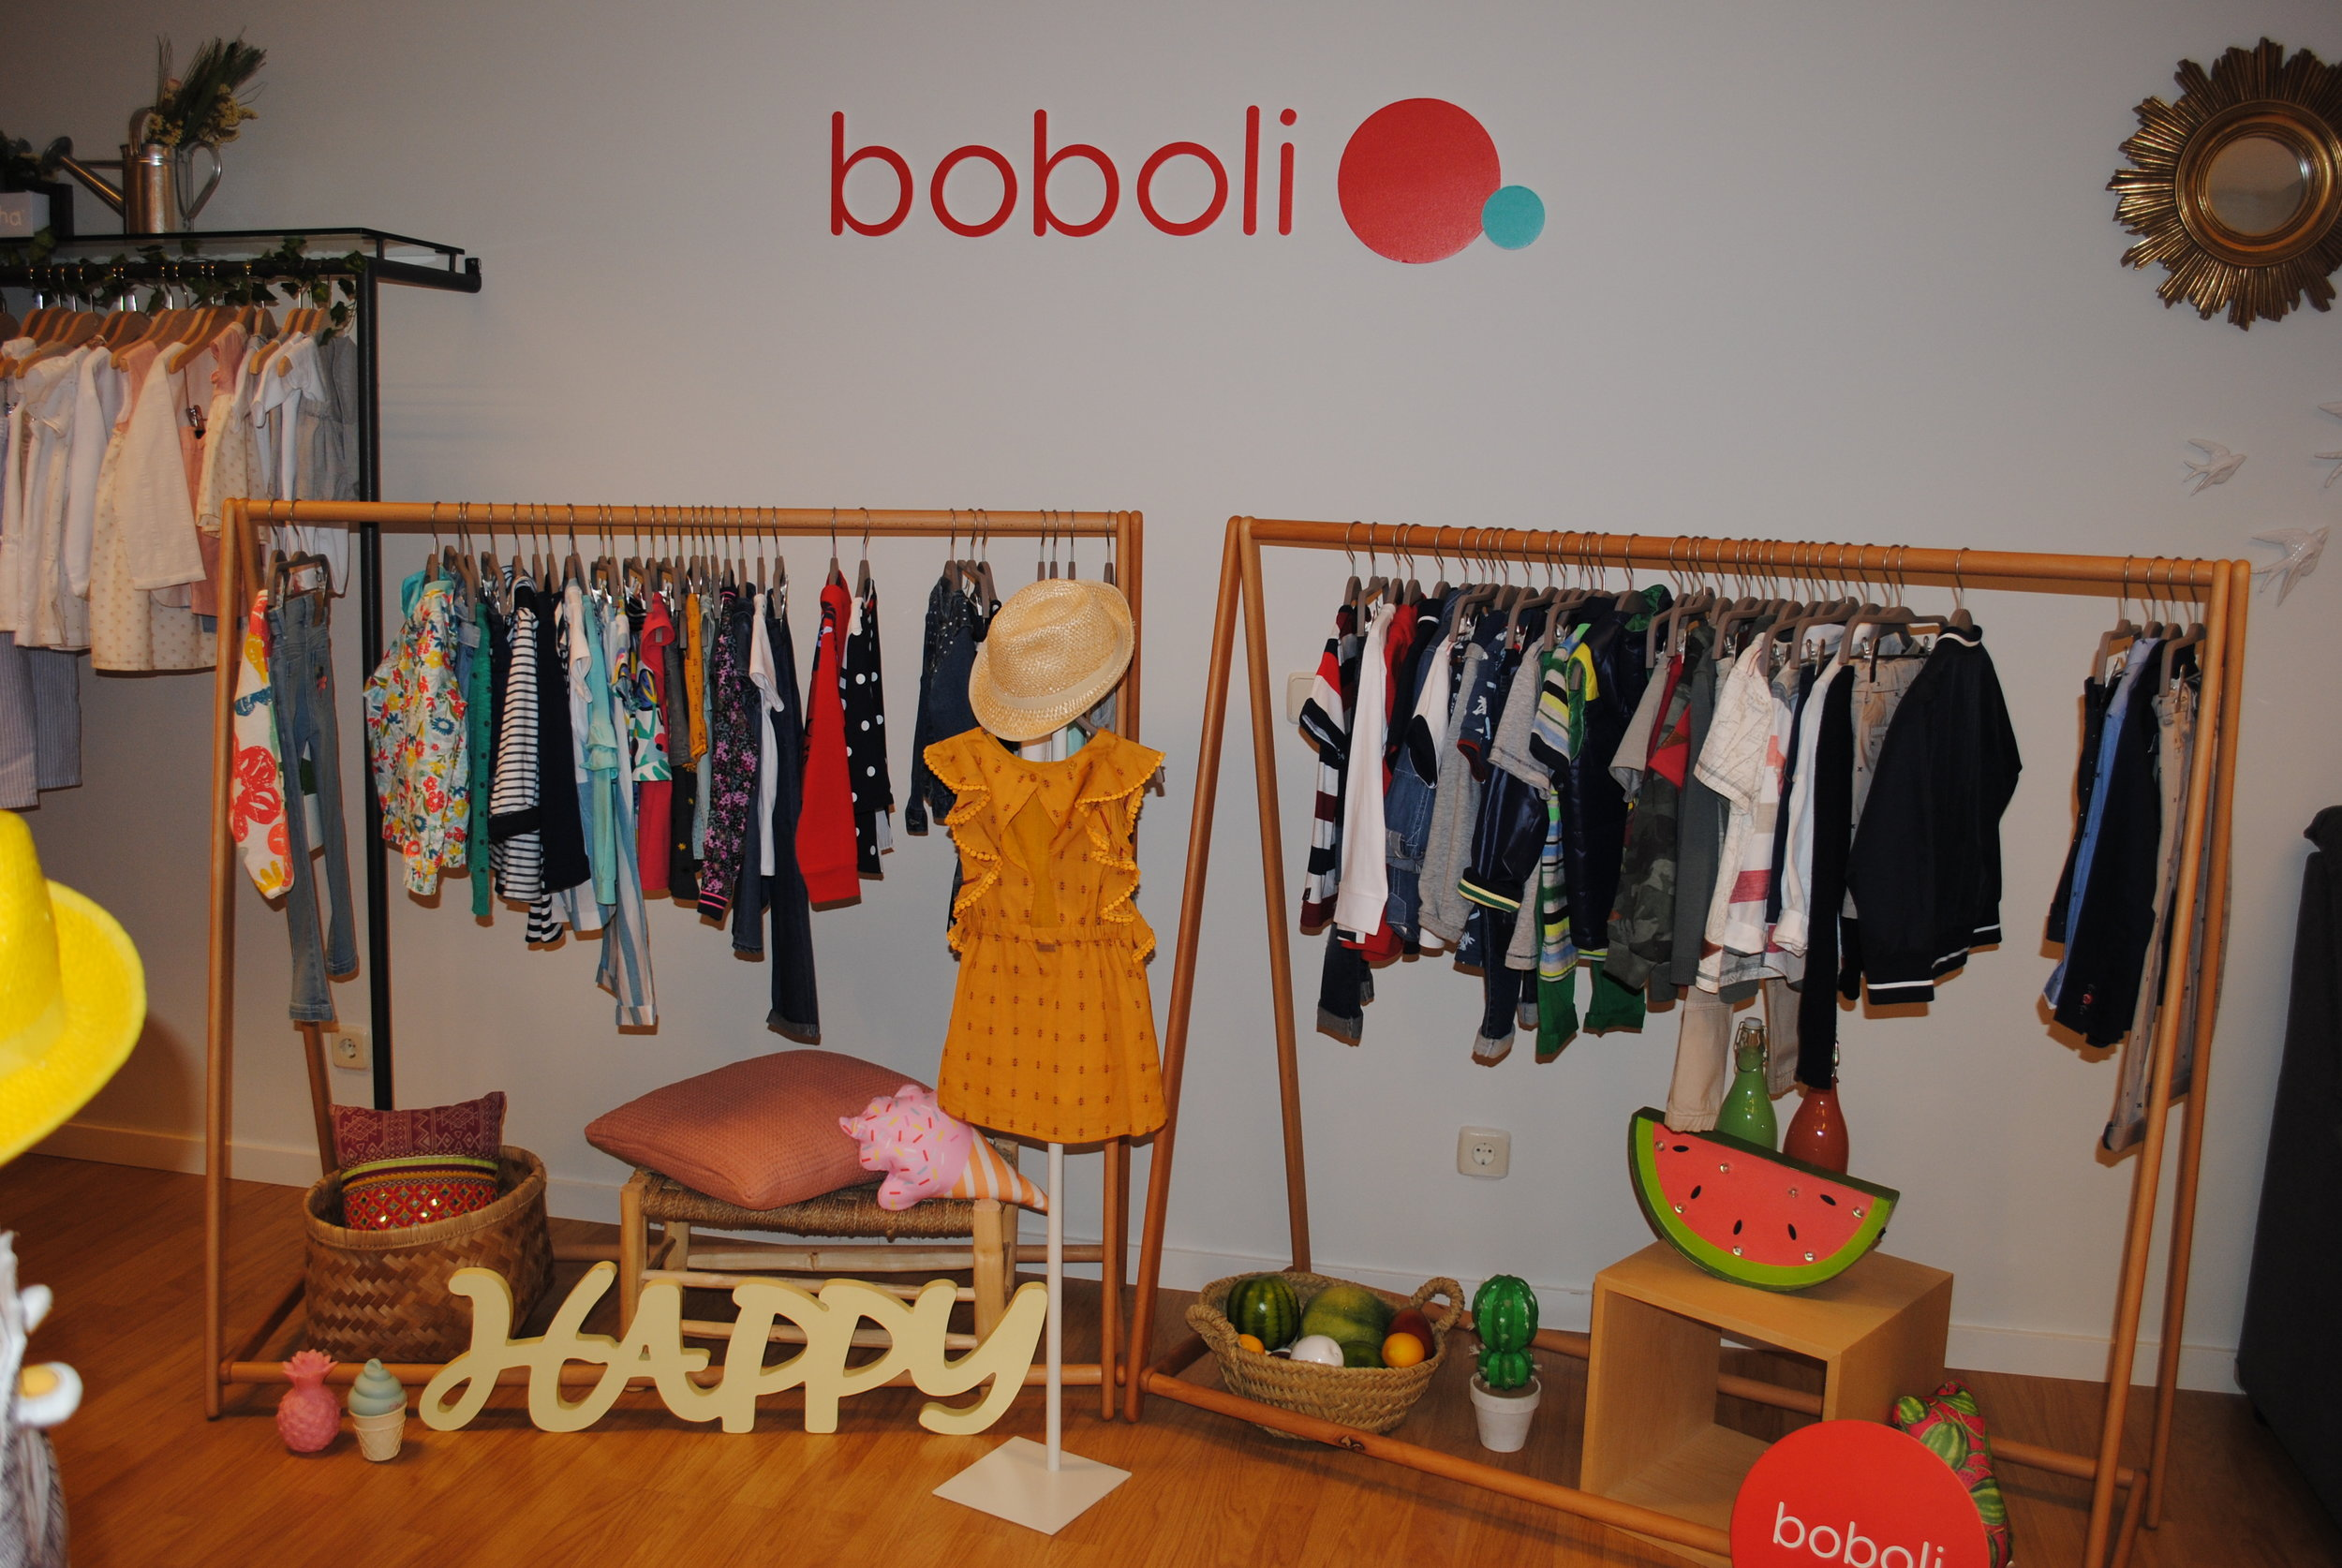 Boboli always so colourful!!! / Bobble siempre tan colorido!!!